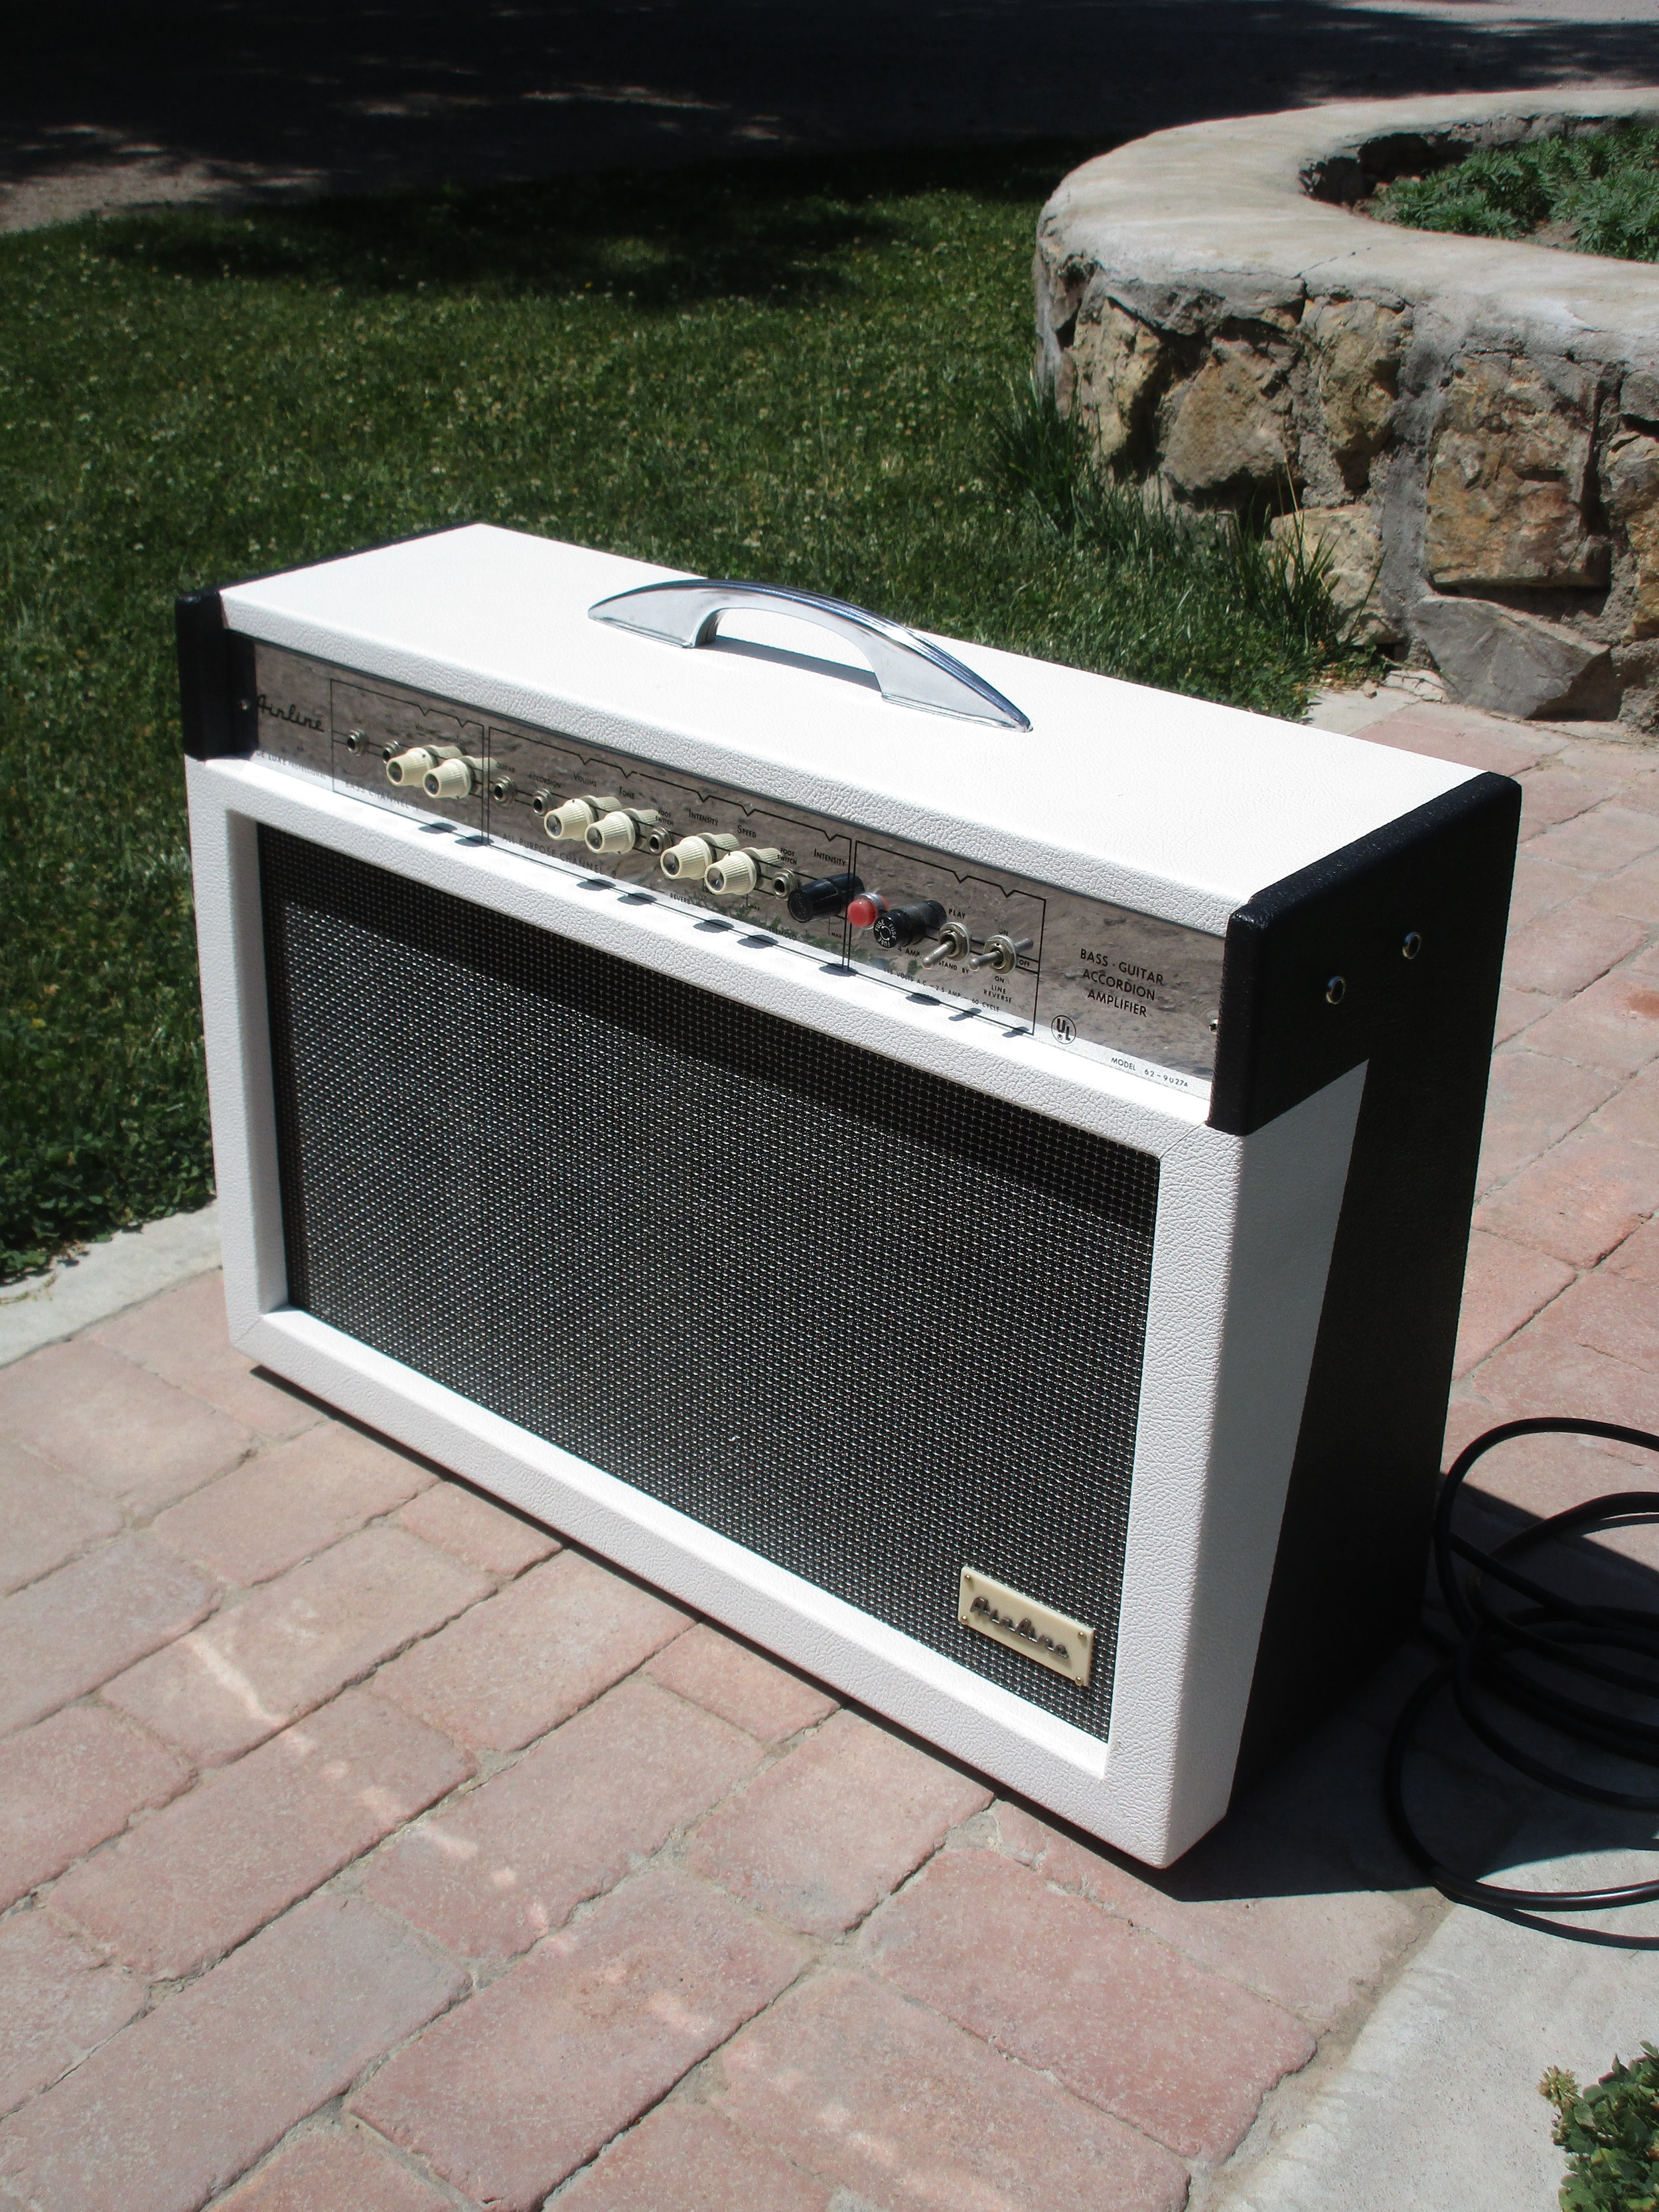 Here's cool old Airline amp I restored to health. It was really tough amp to work on and has a lot of inherent flaws in the design. Looks cool though!